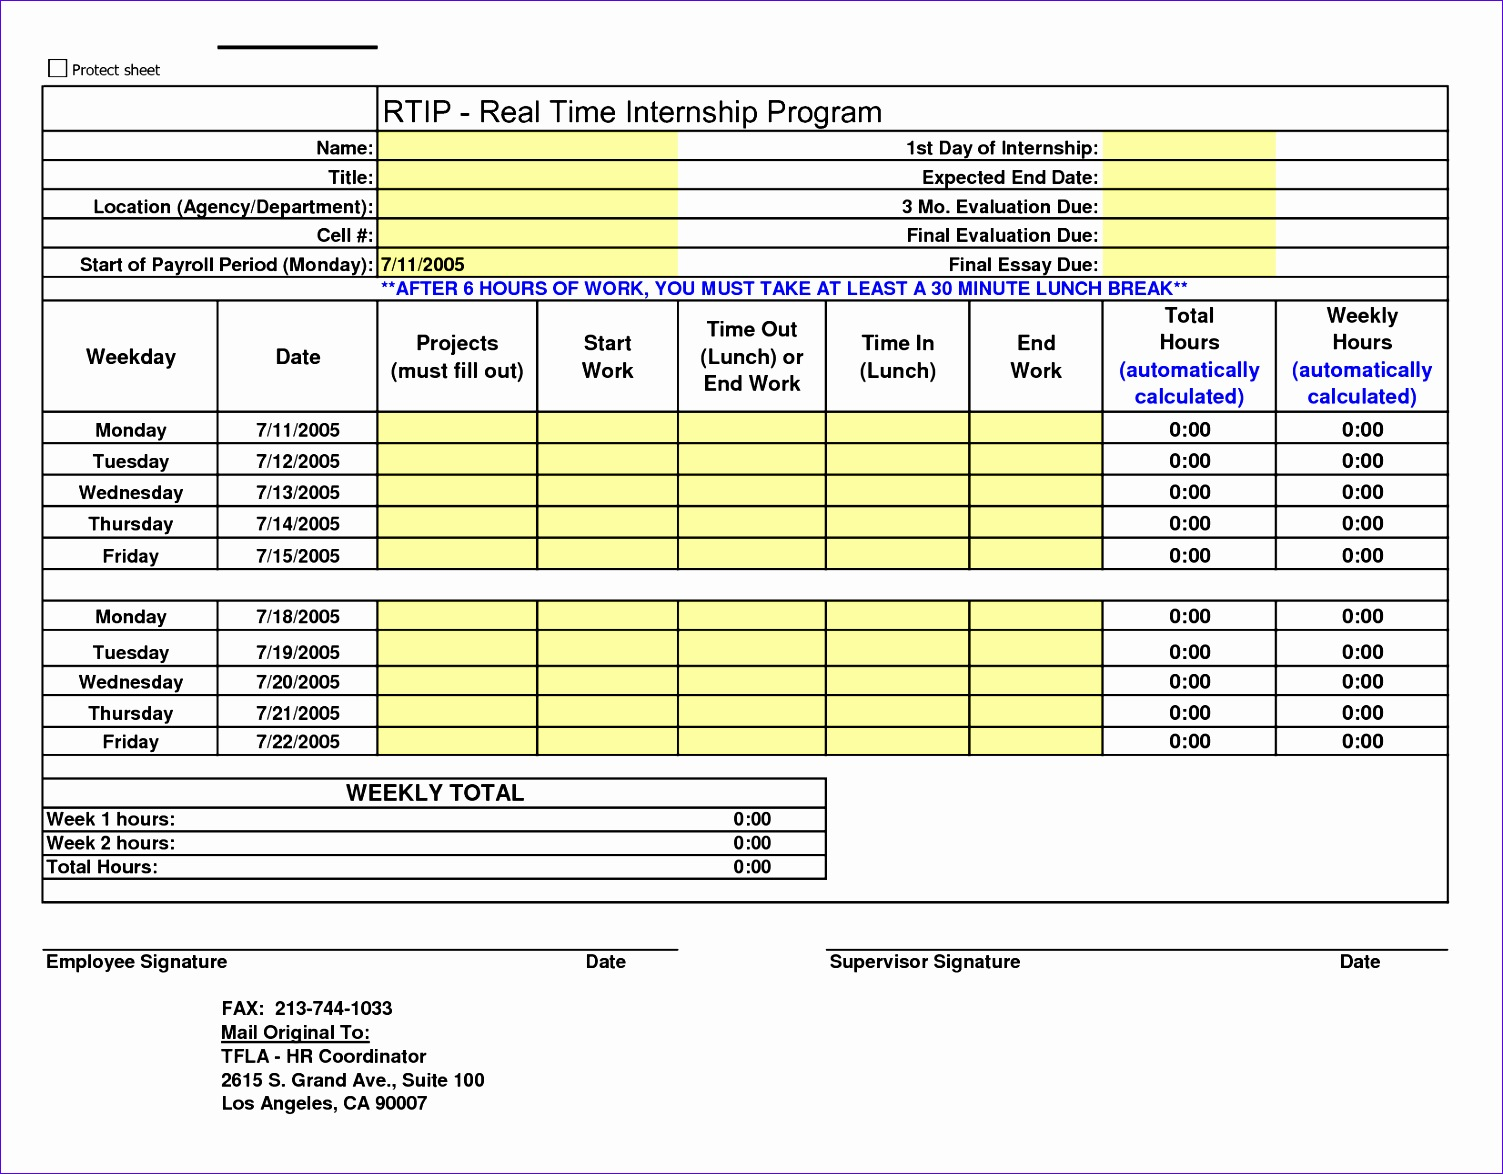 Excel Weekly Timesheet Template with formulas Tcemj Beautiful 7 Weekly Timesheet Calculator